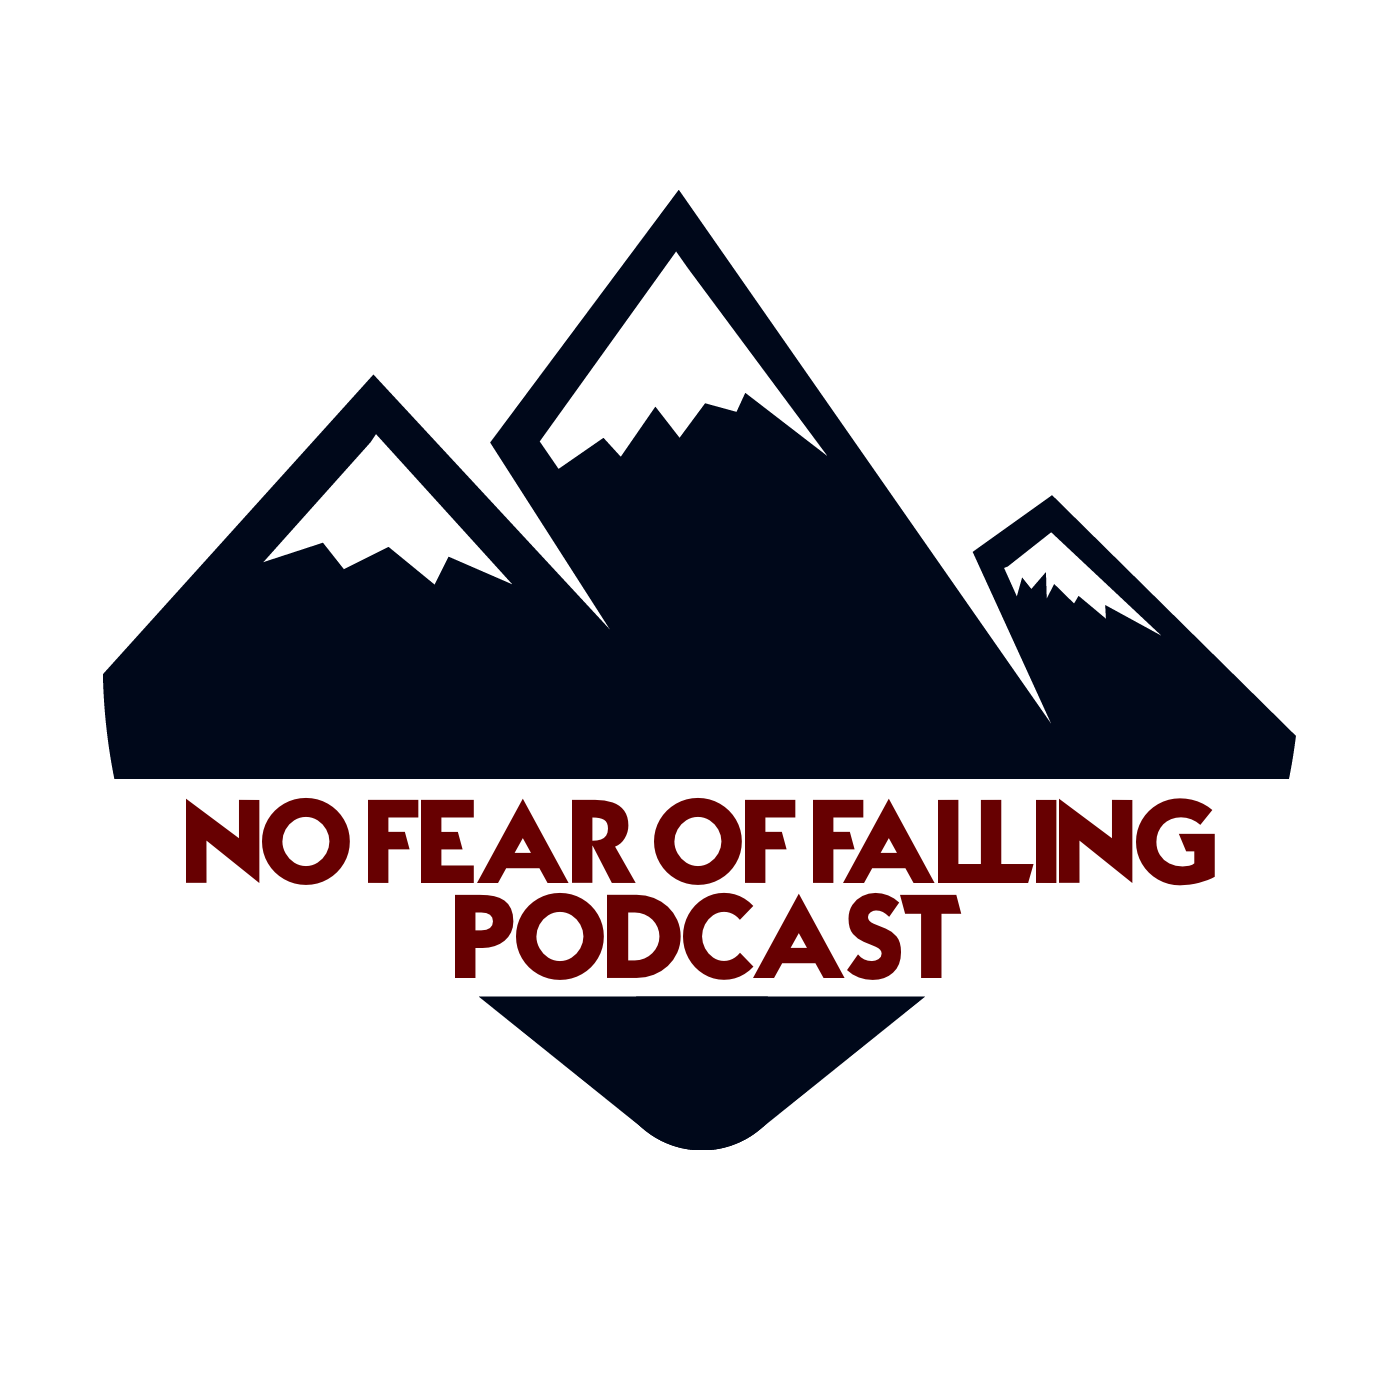 No Fear of Falling Podcast